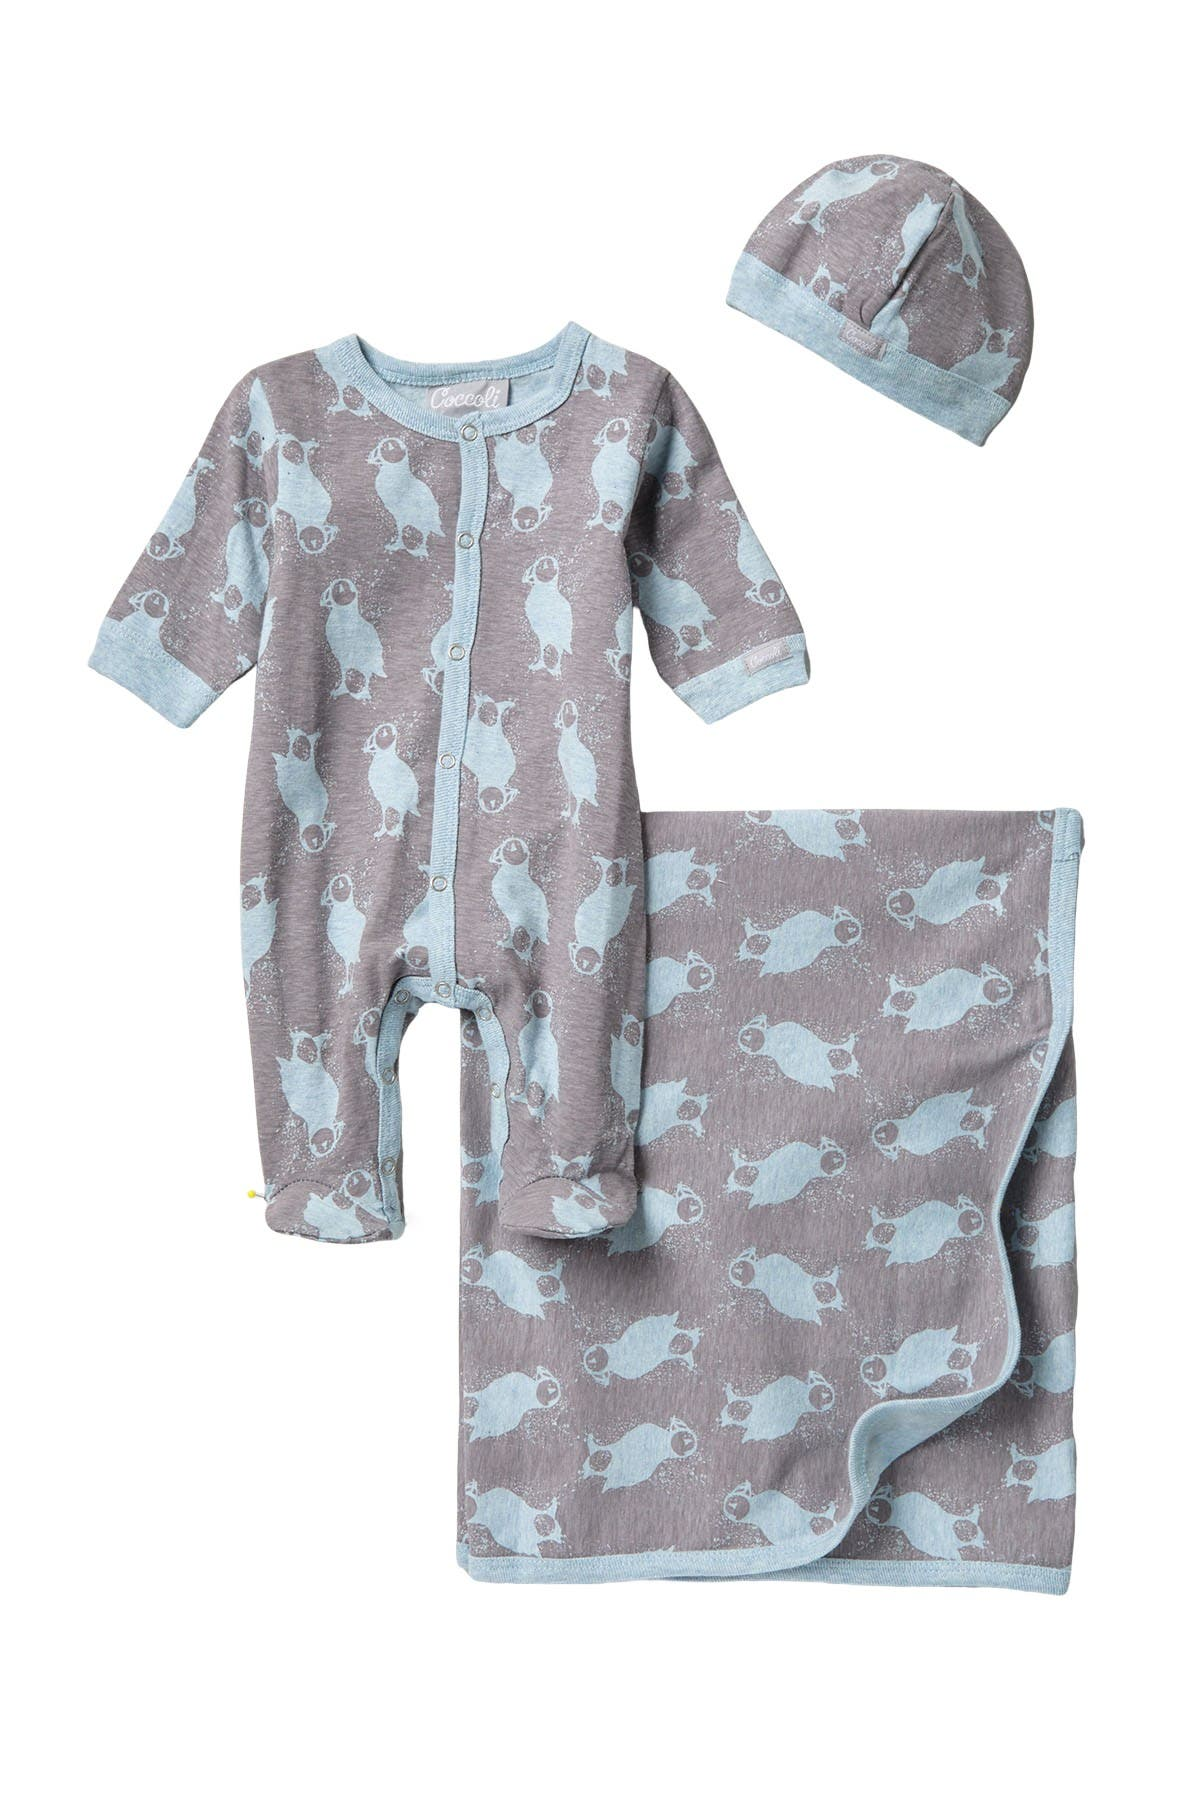 Image of Coccoli Puffin Island Coverall & Blanket Layette Set